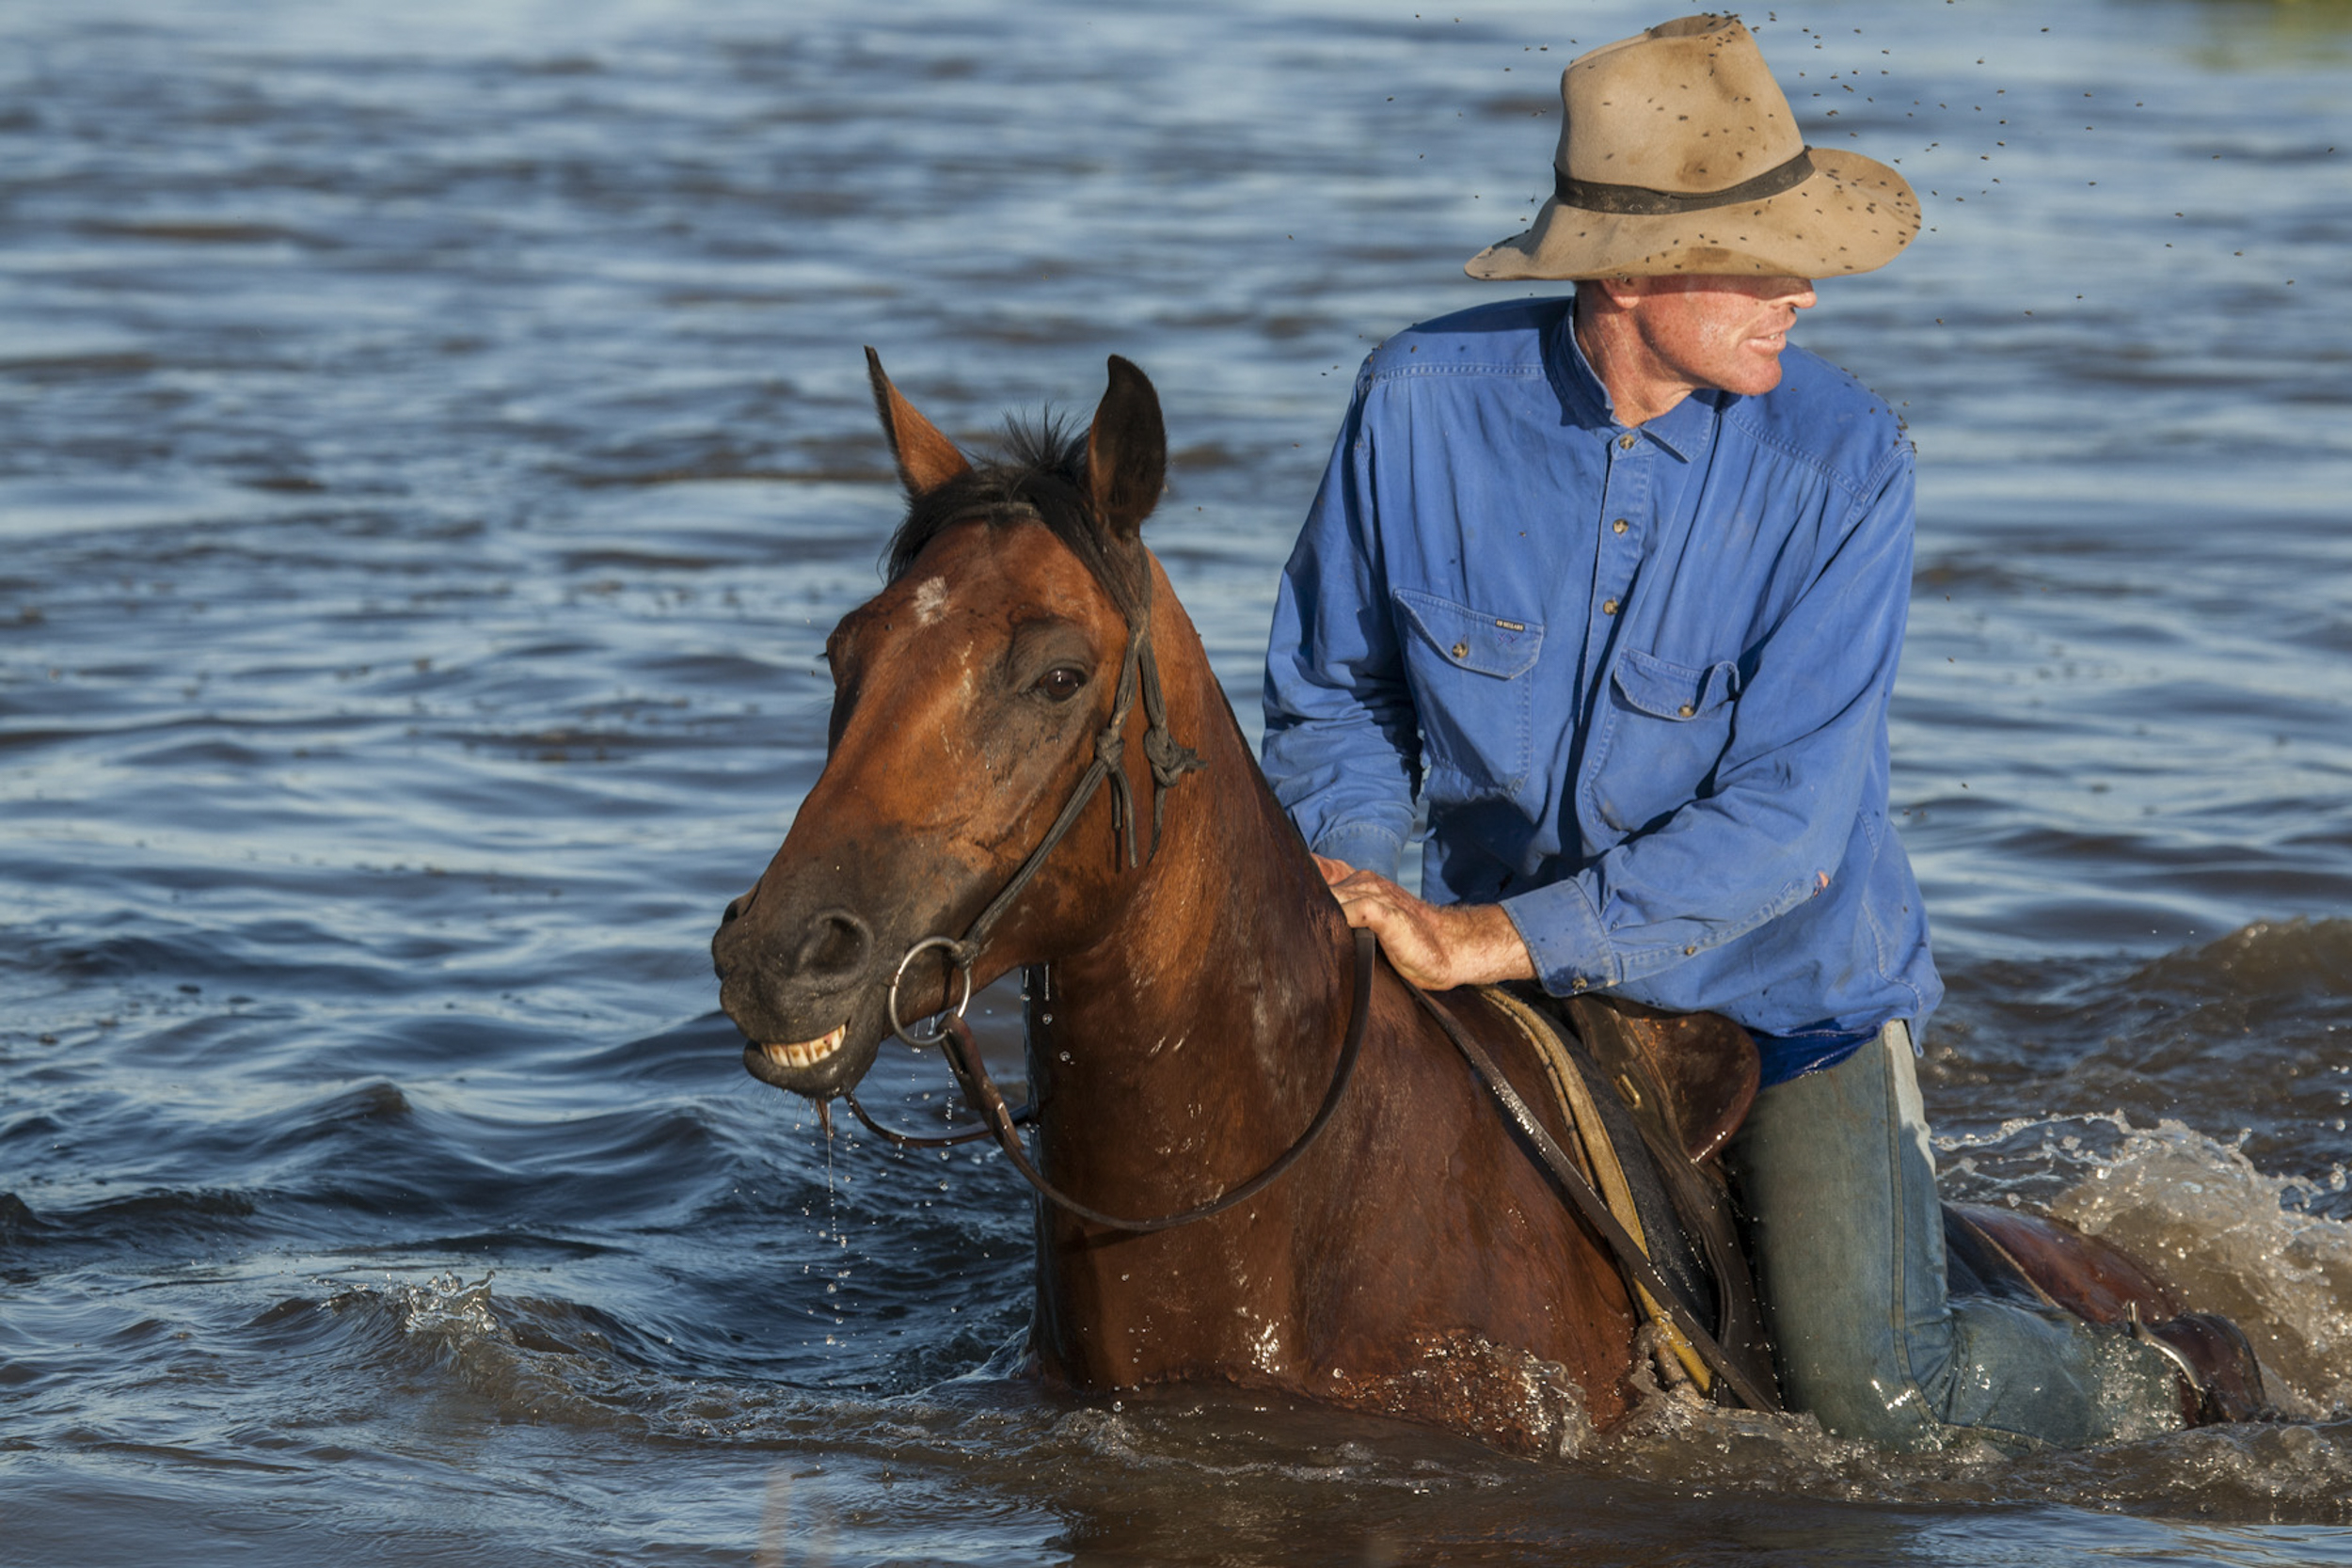 Garry Hall, Chairman of the Macquarie Marshes Environmental Landholders Association, crosses a river while herding his cattle. Macquarie Marshes, Australia